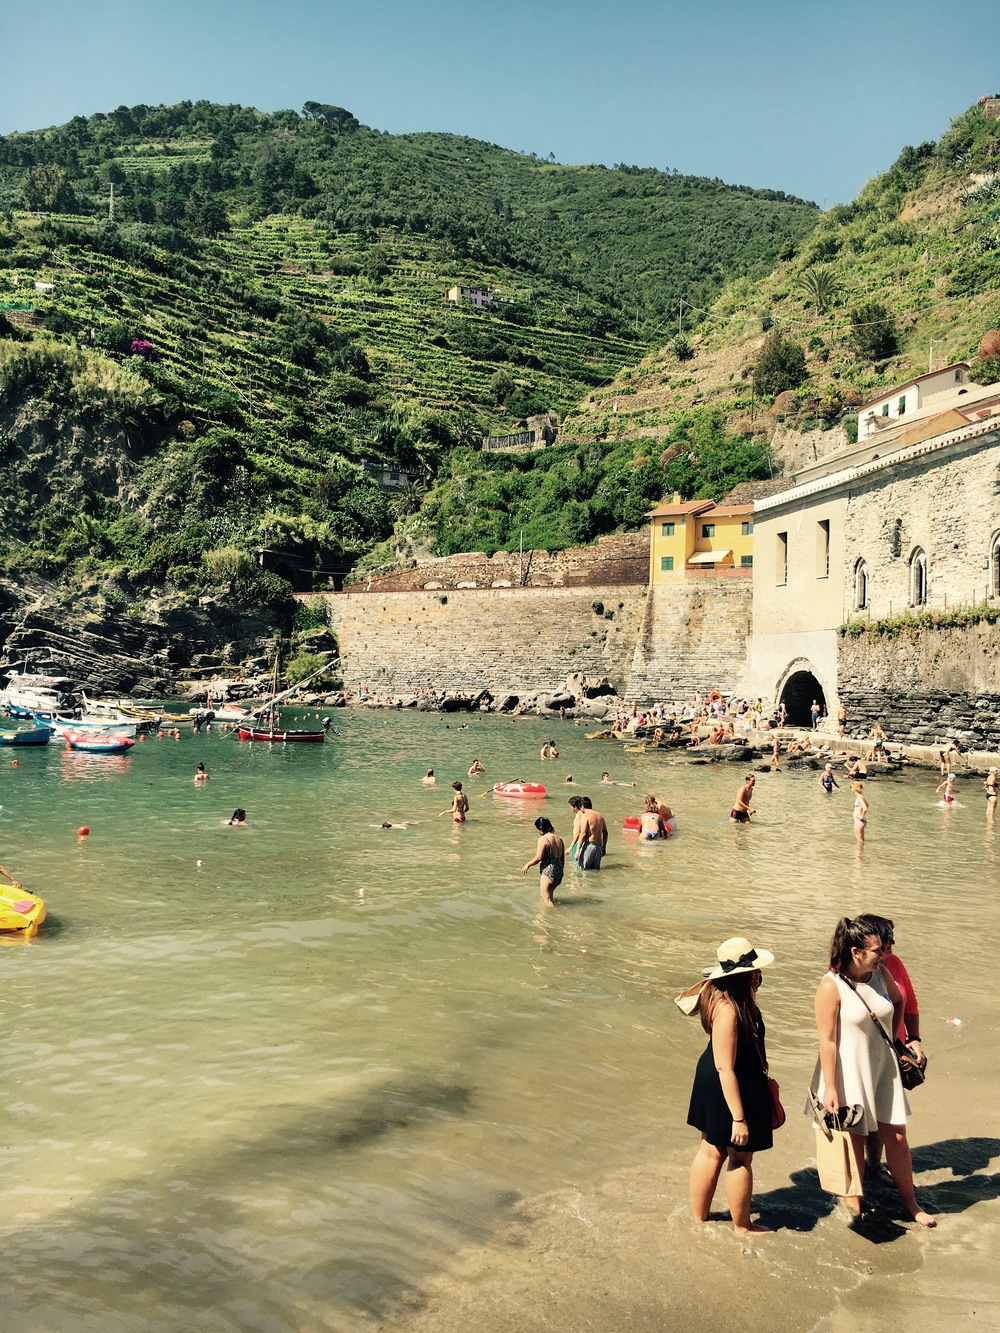 People swimming in Vernazza, Cinque Terre, Italy